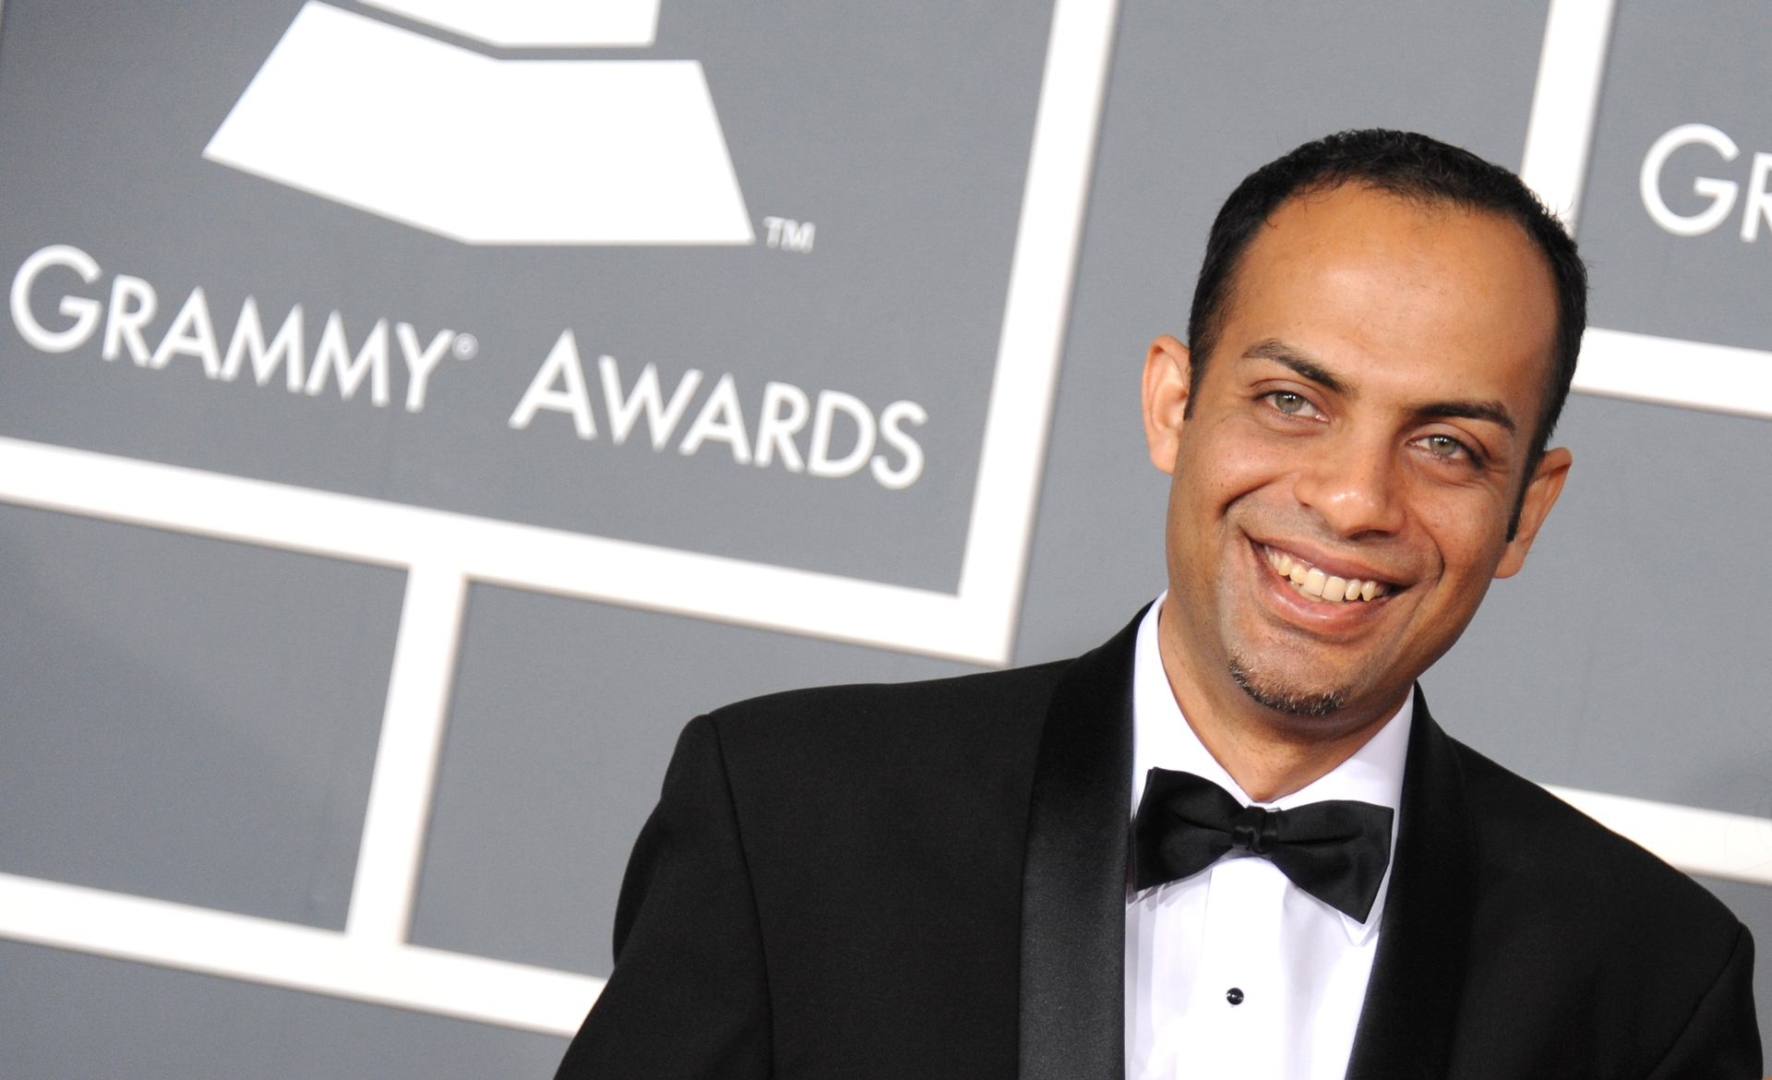 Arun Shenoy arrives at the 55th annual Grammy Awards on Sunday, Feb. 10, 2013, in Los Angeles. (Photo by Jordan Strauss/Invision/AP)